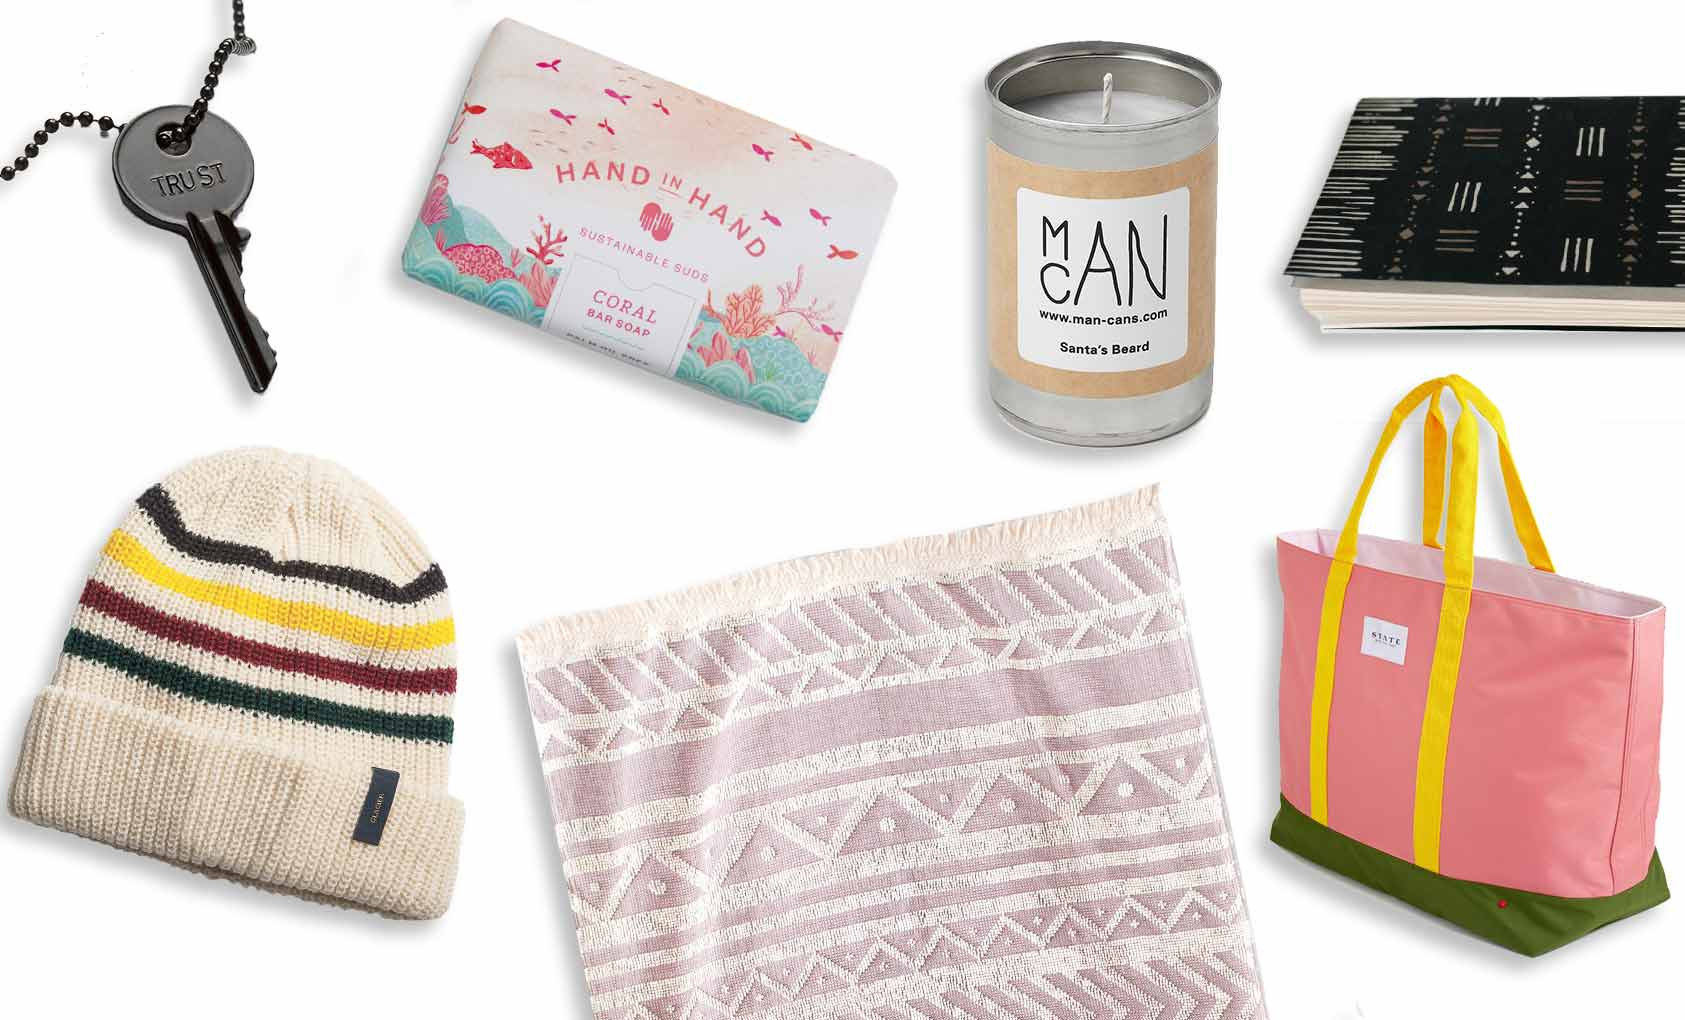 2017 Gift Guide: Charities & Causes, Design*Sponge